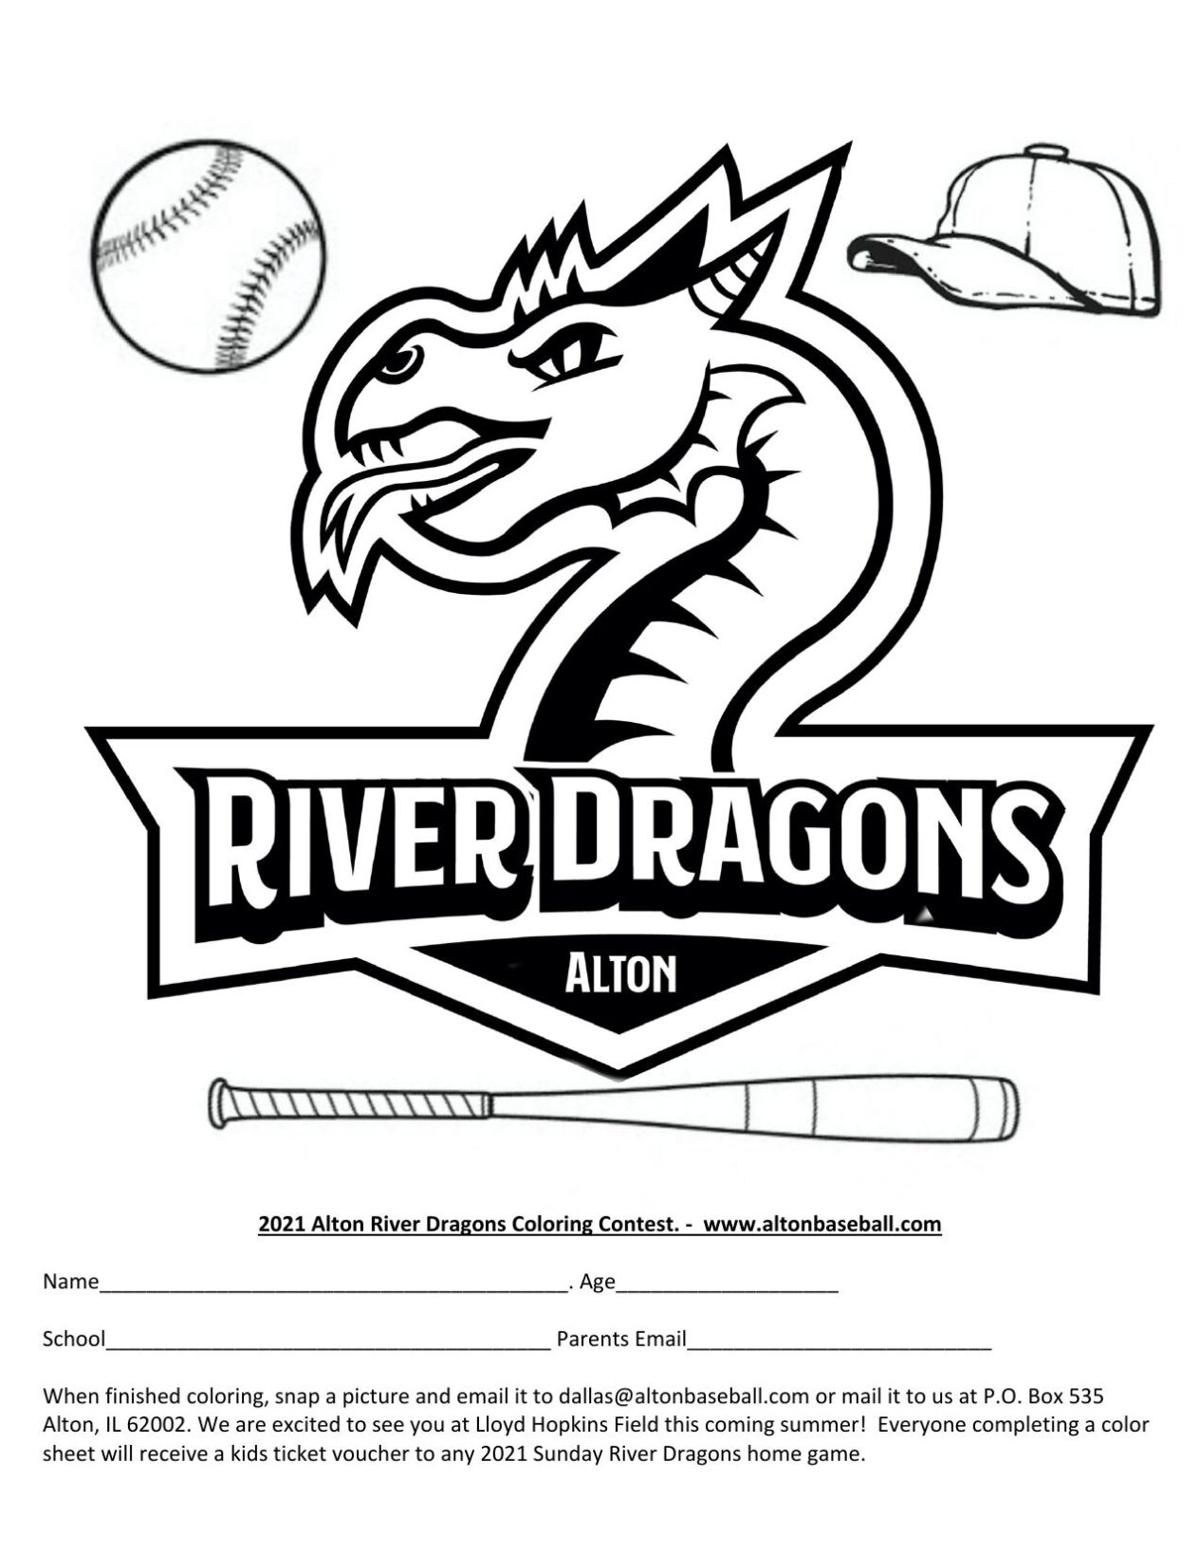 River Dragons coloring contest